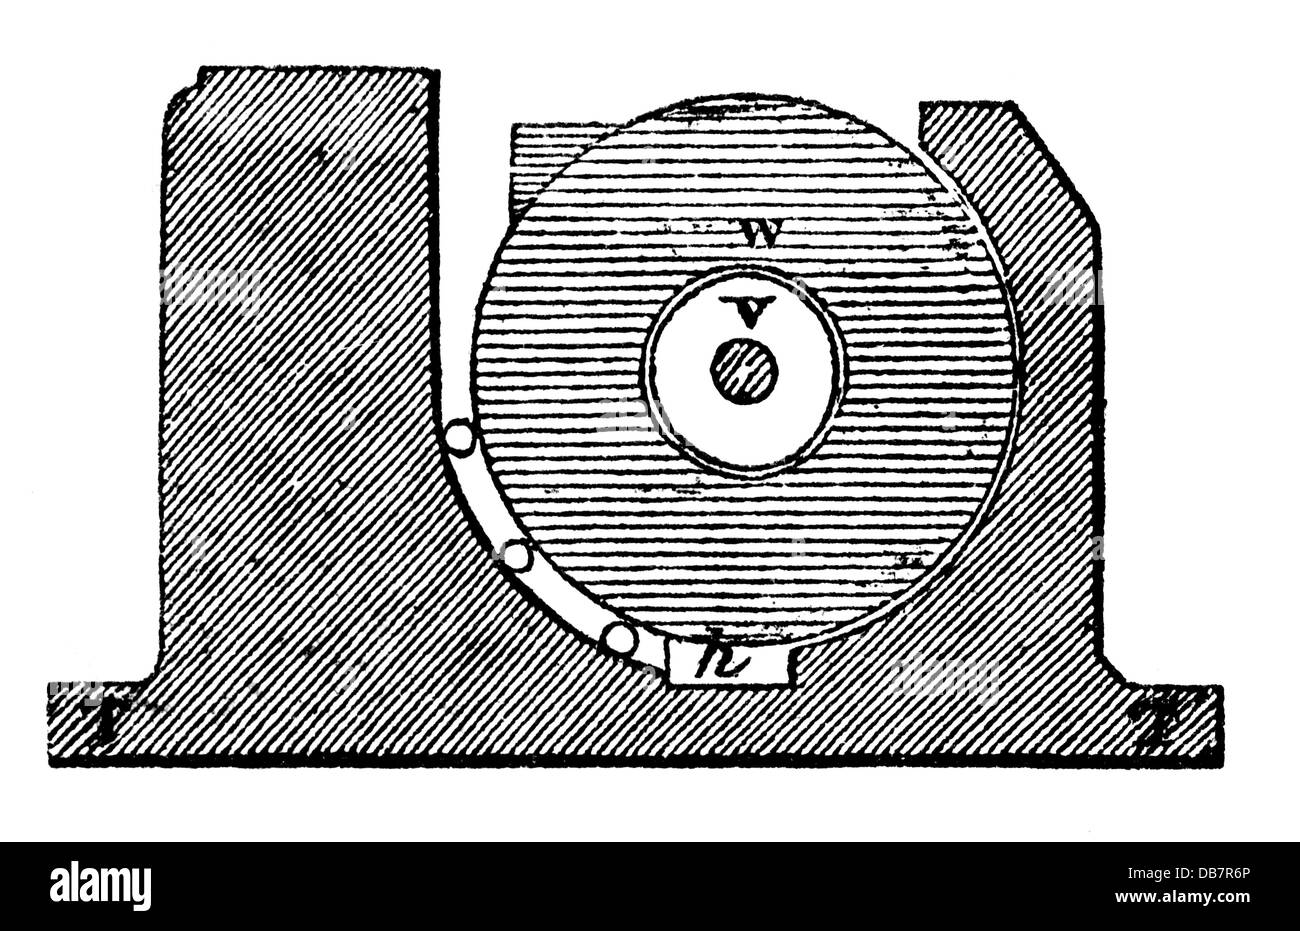 money / finances, mintage, compression of the coin plates, from: book of inventions, trades and industries, Otto - Stock Image